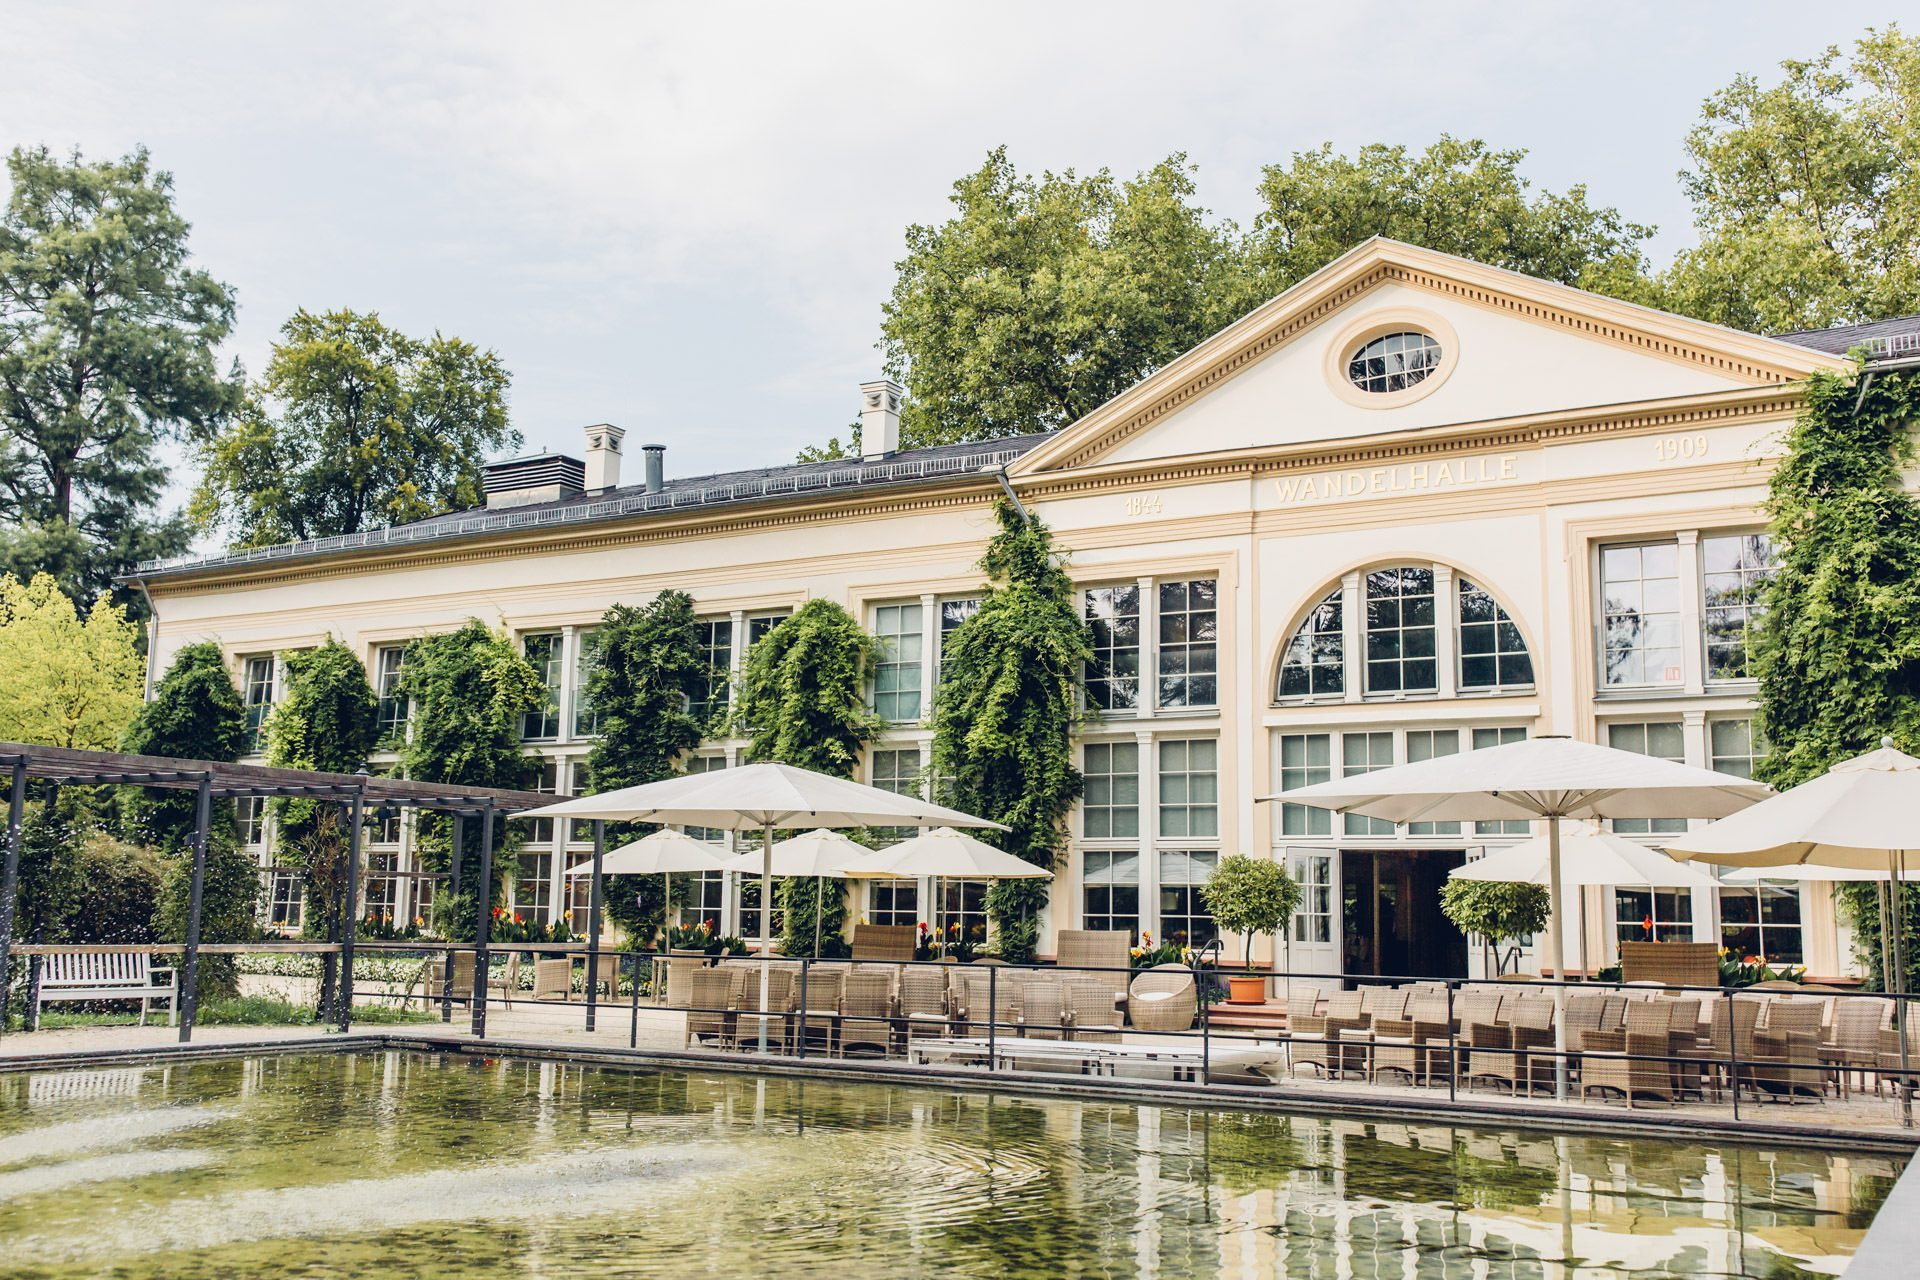 Orangerie Bad Homburg